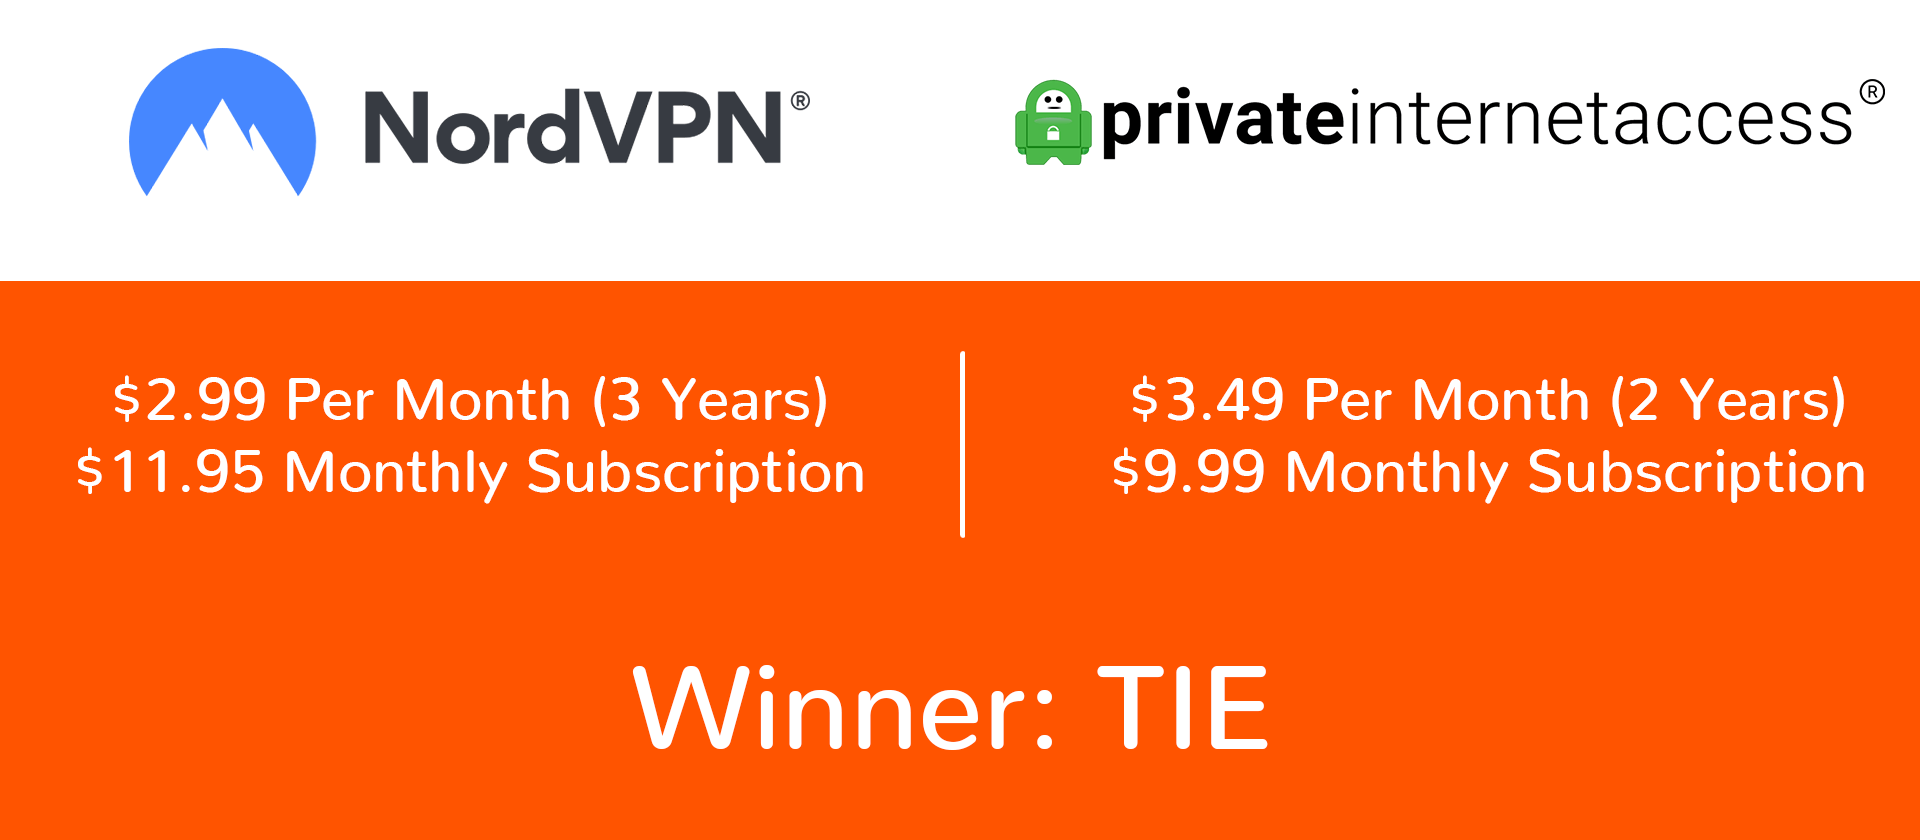 NordVPN vs PIA price comparison